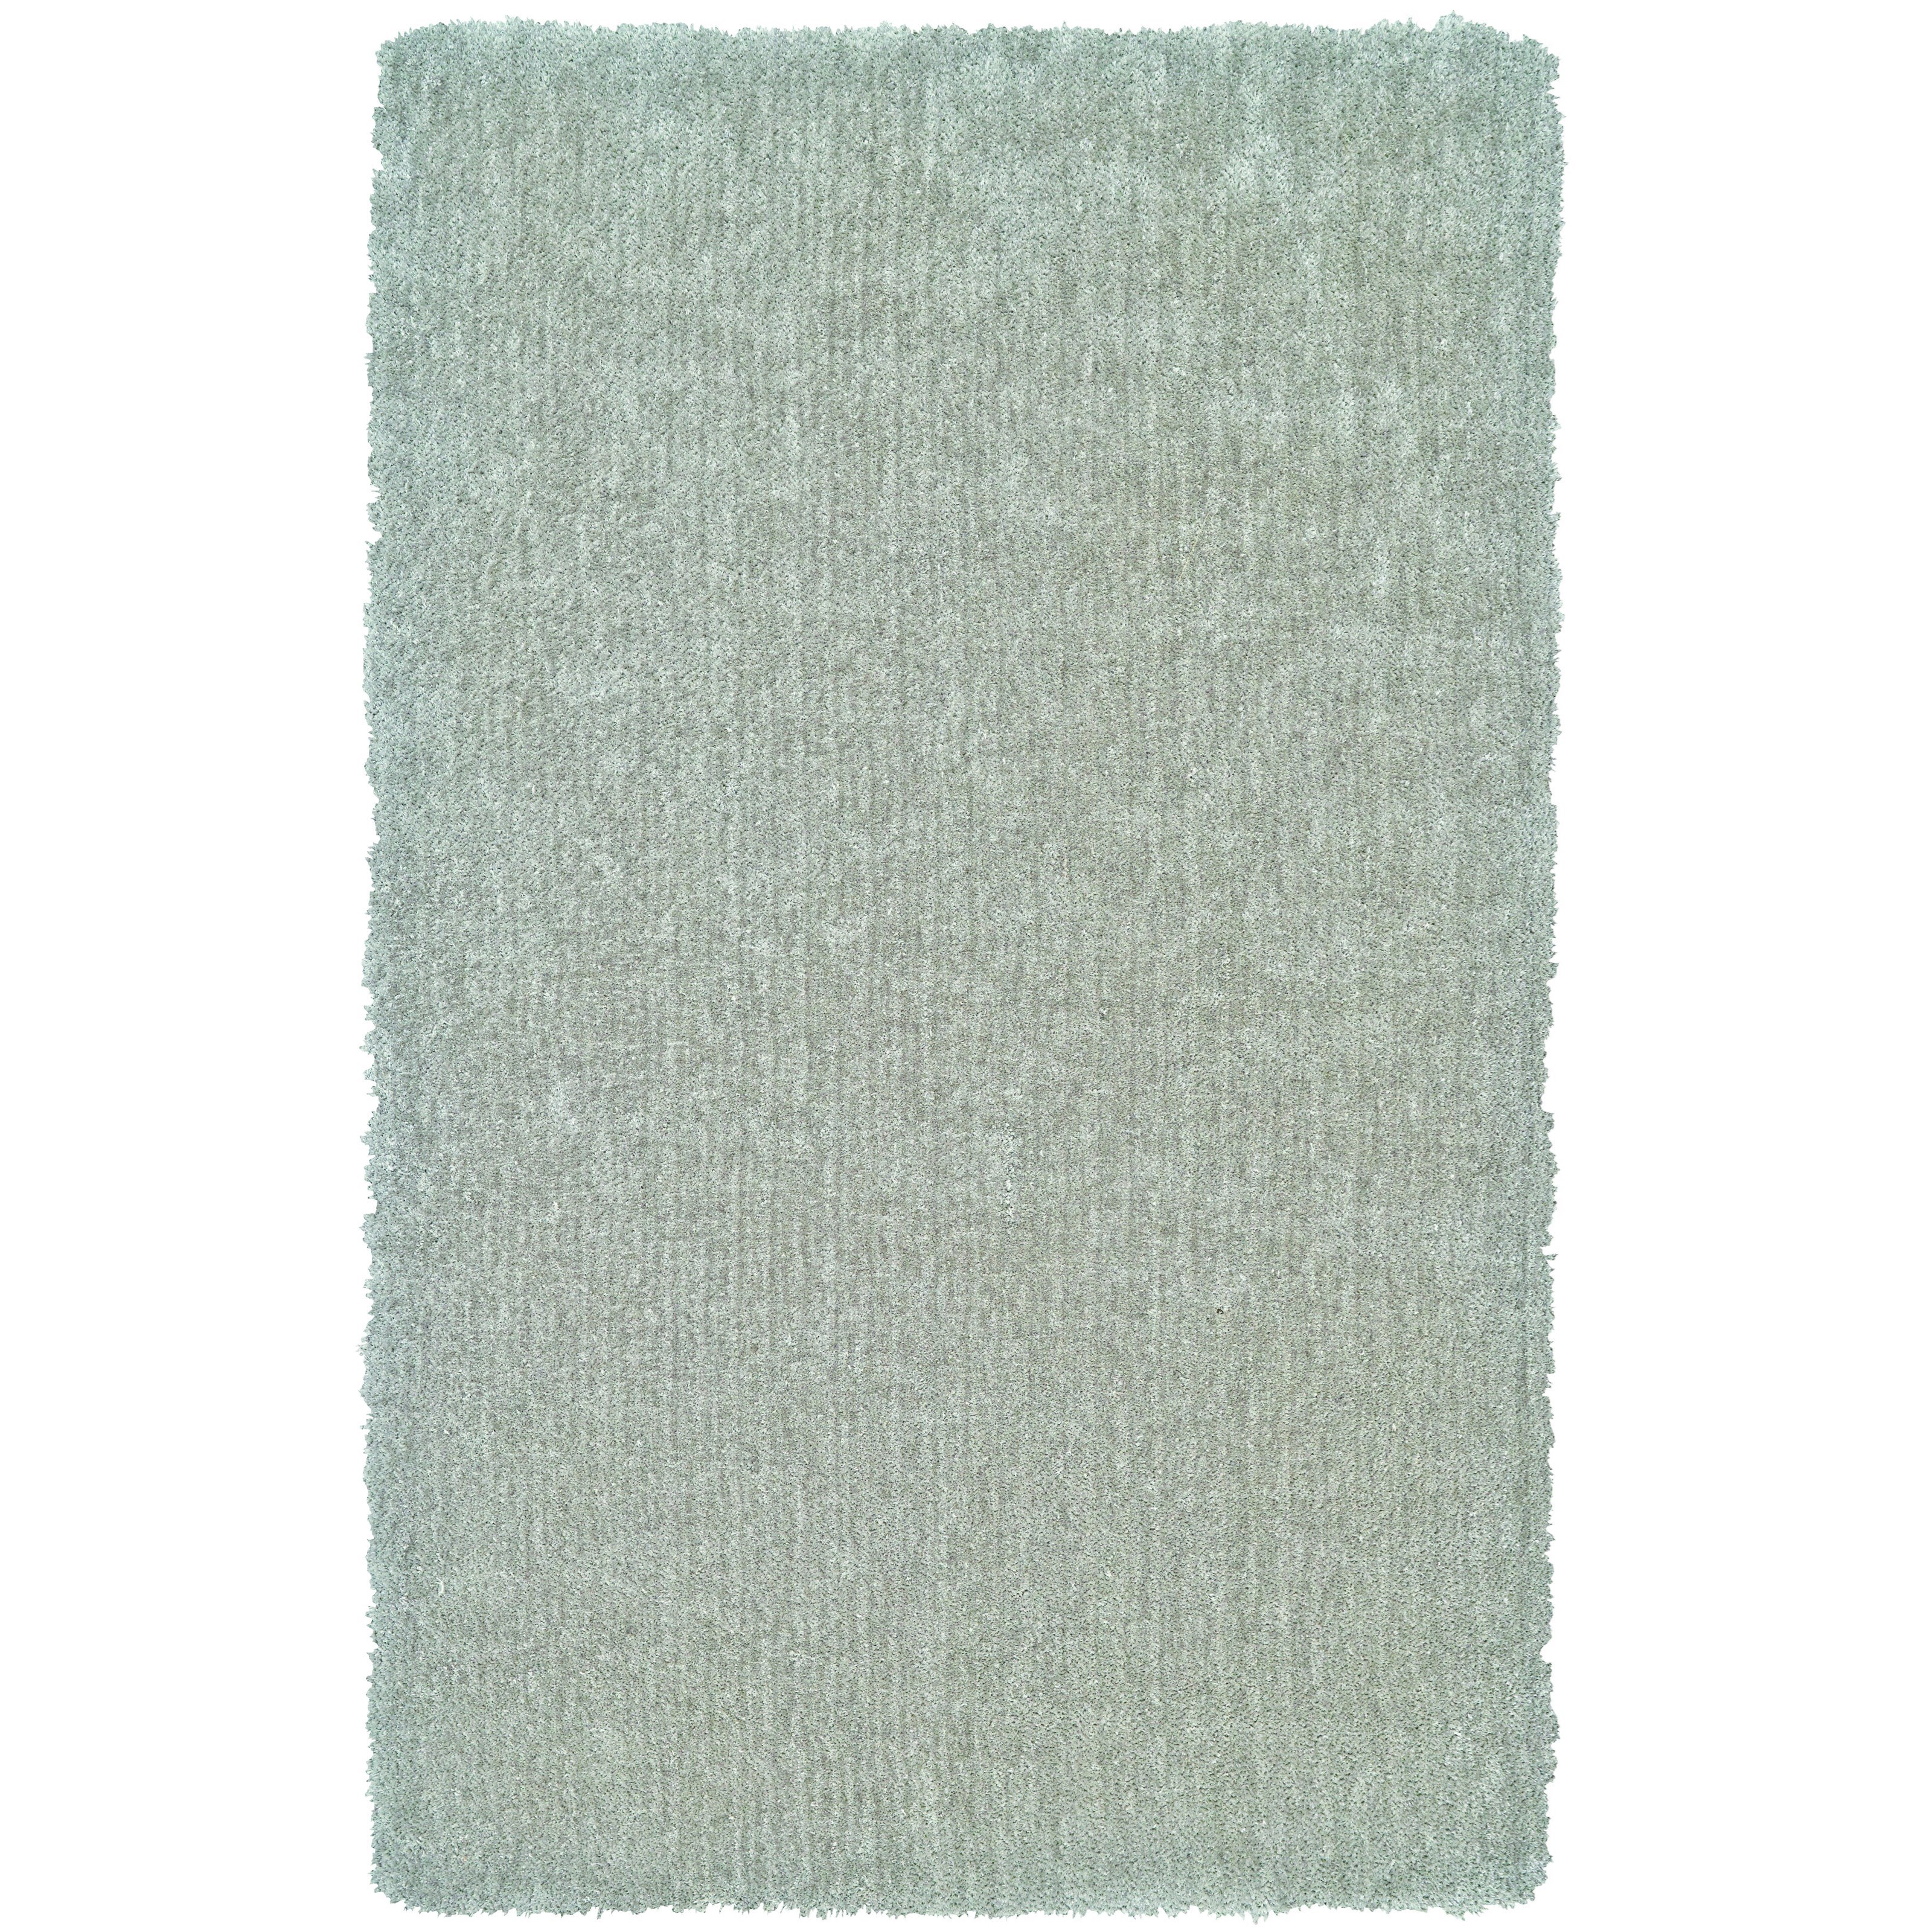 Marbury Silver 5' x 8' Area Rug by Feizy Rugs at Sprintz Furniture